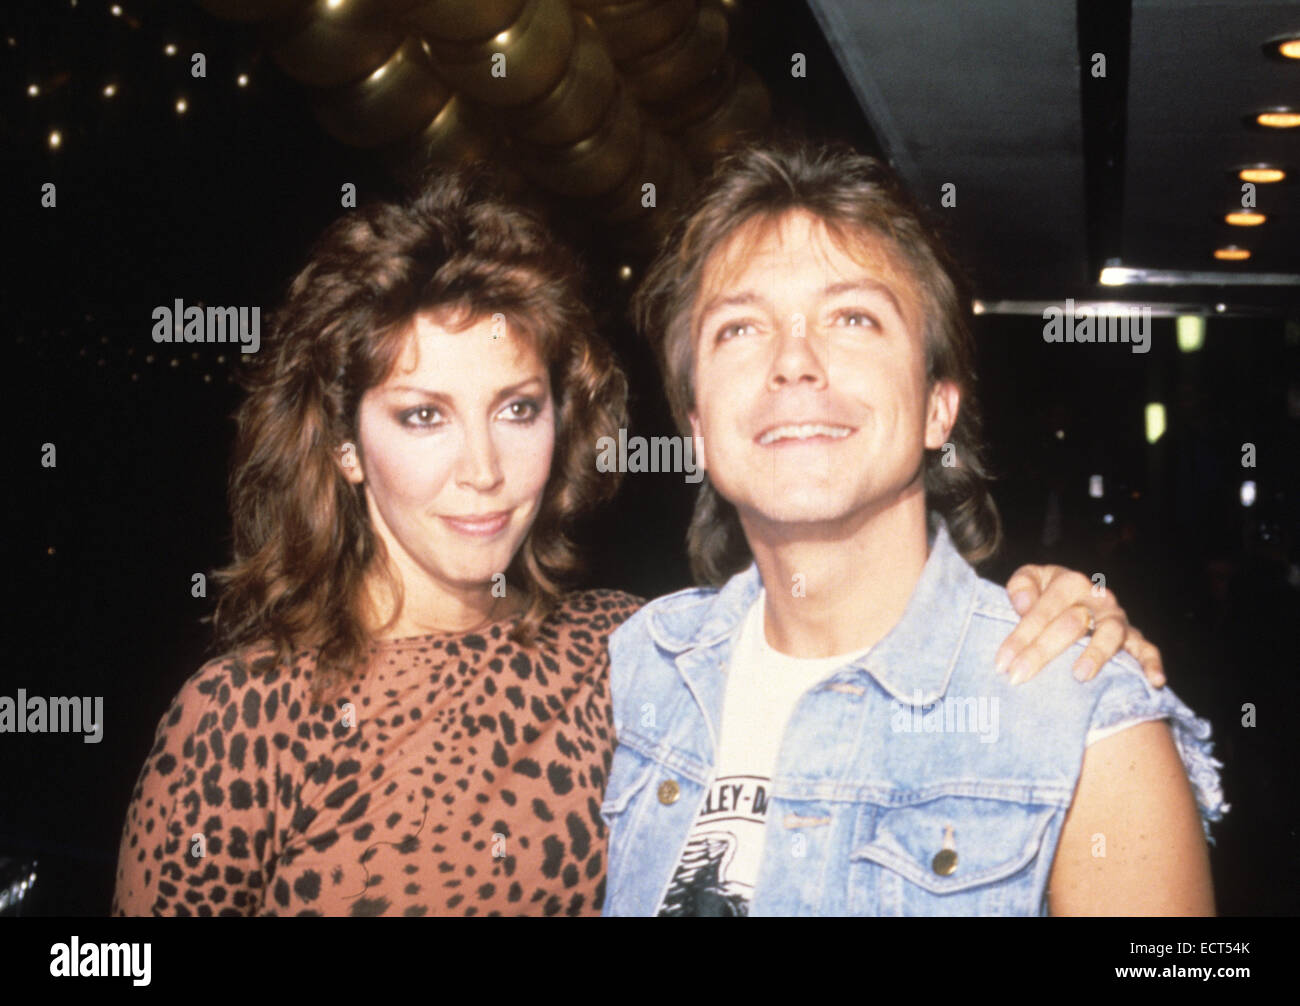 David Cassidy Us Pop Singer In 1973 With His Wife Meryl Ann Tanz Stock Photo Alamy